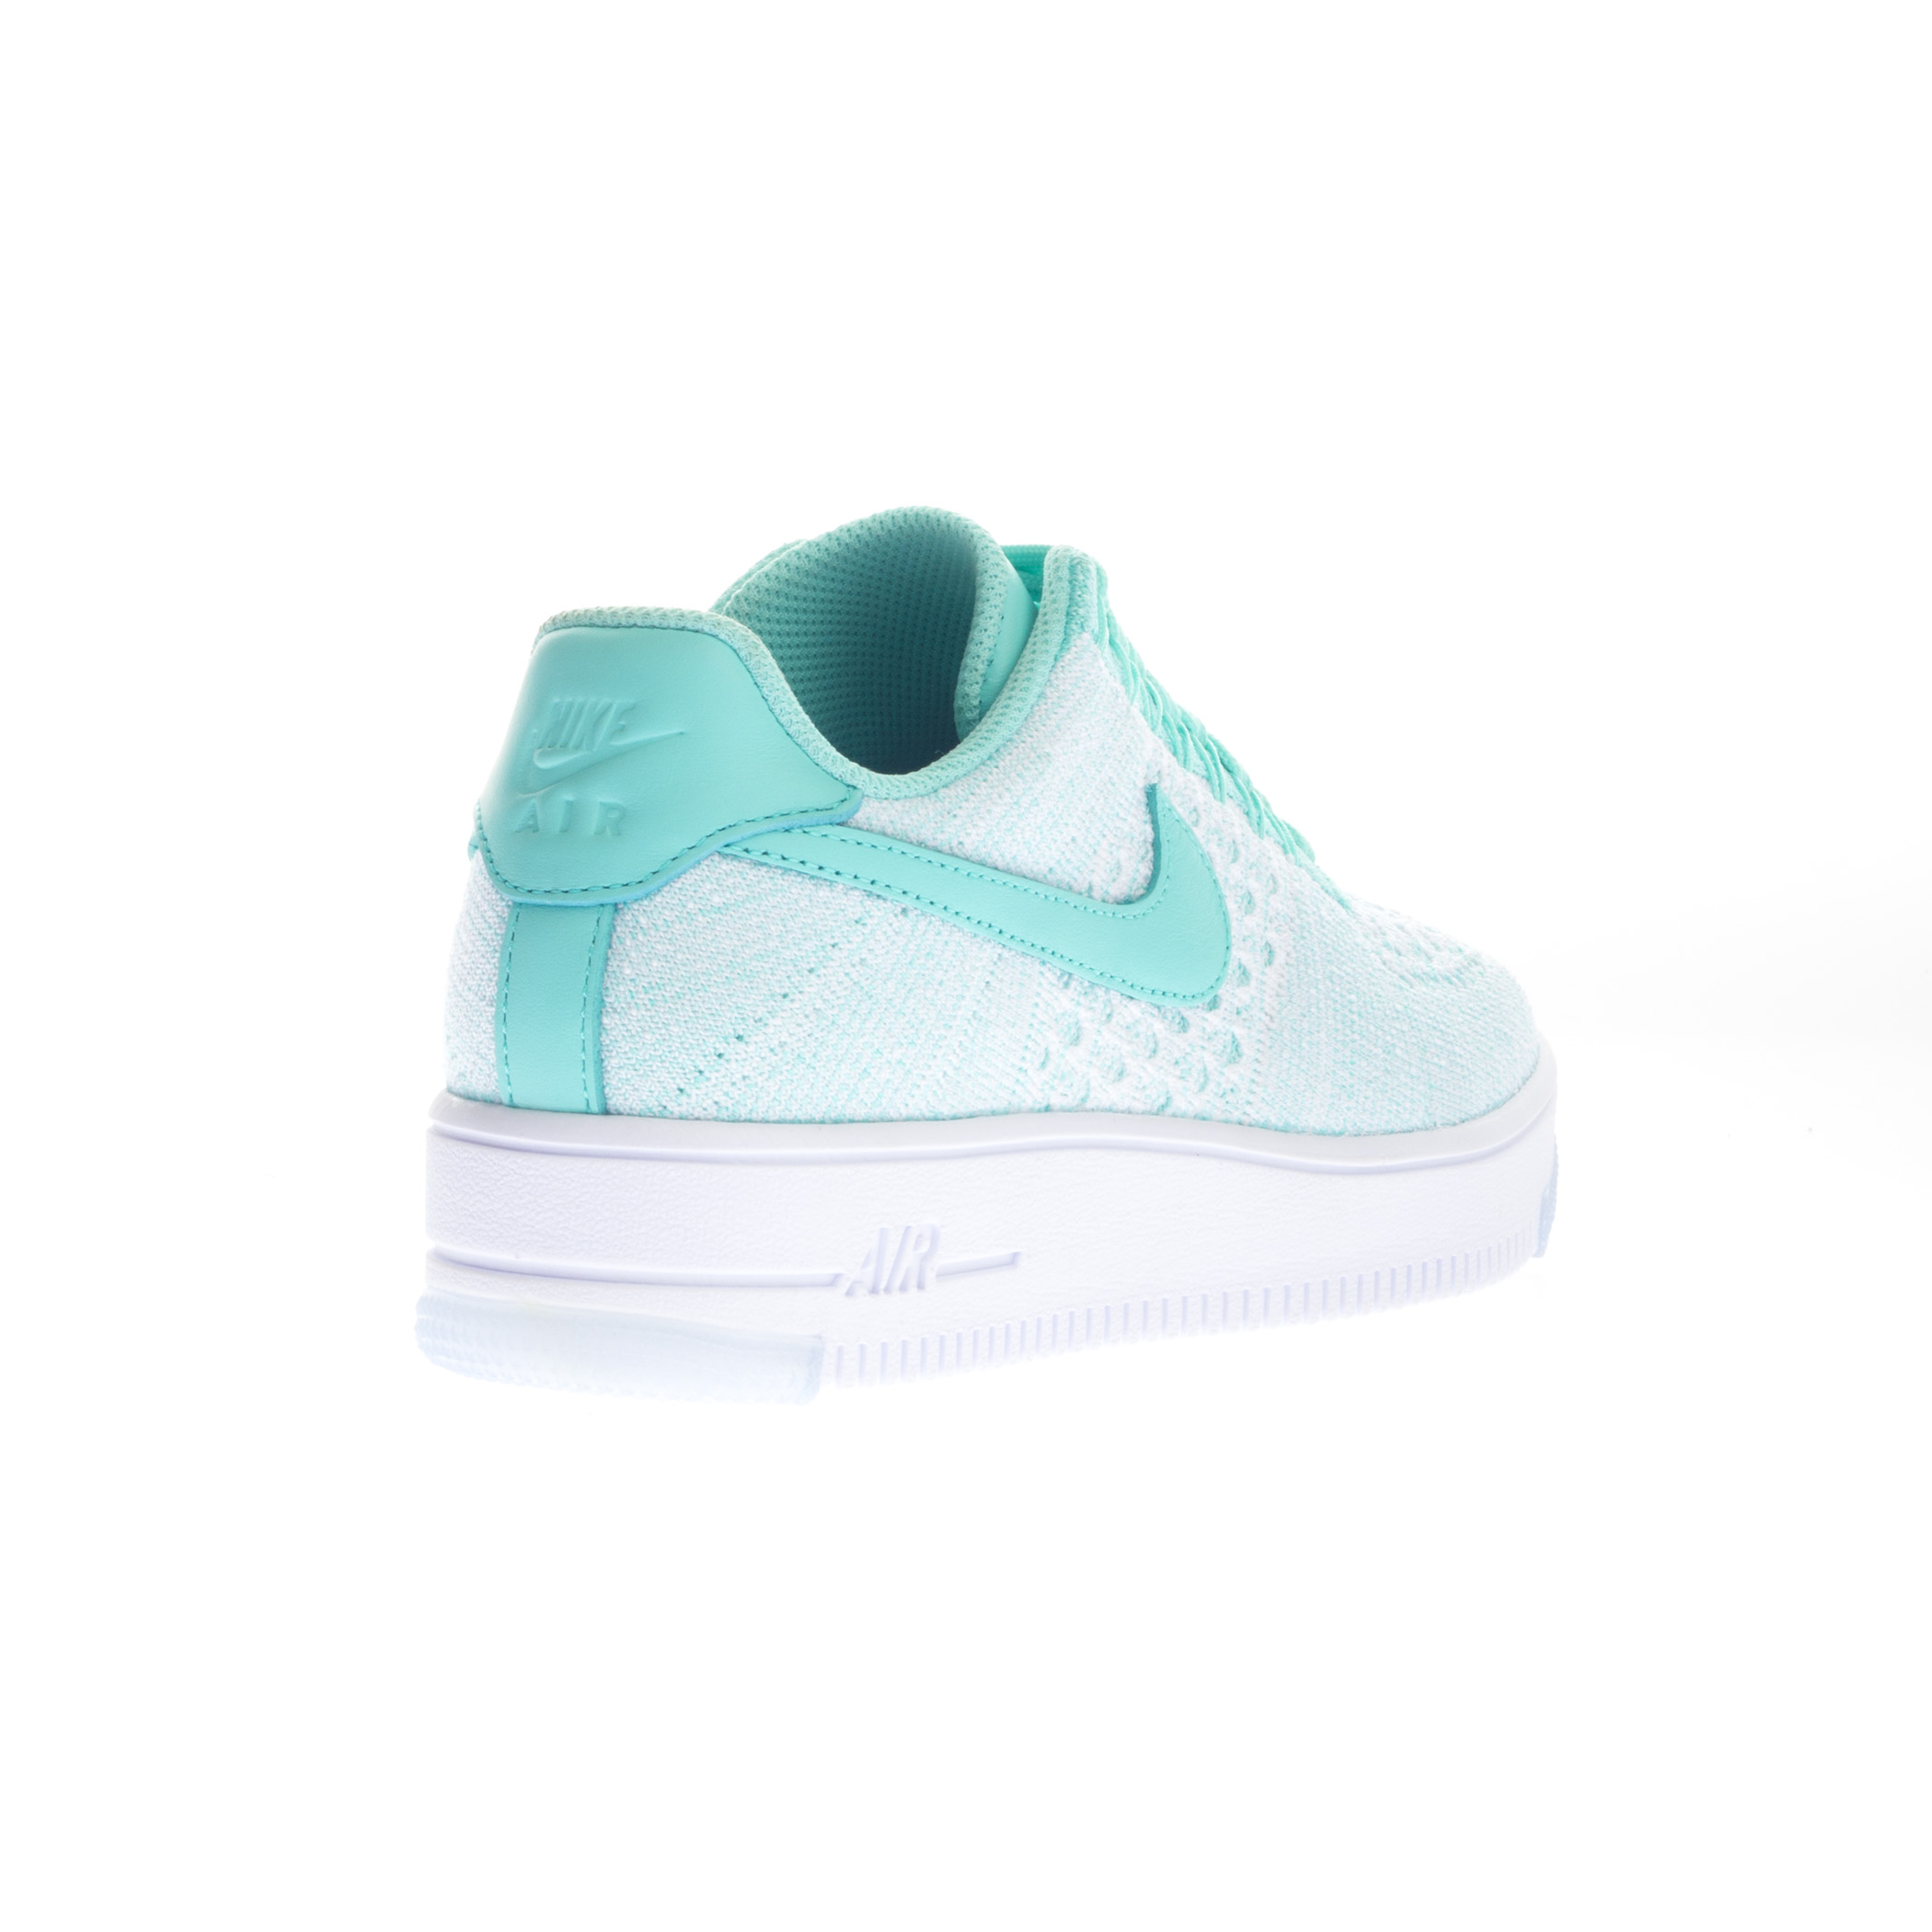 Nike femmes 's 1 Air Force 1 's Flyknit Low Trainers Style Chaussure 820256 Gym Fitness 9ed9b4